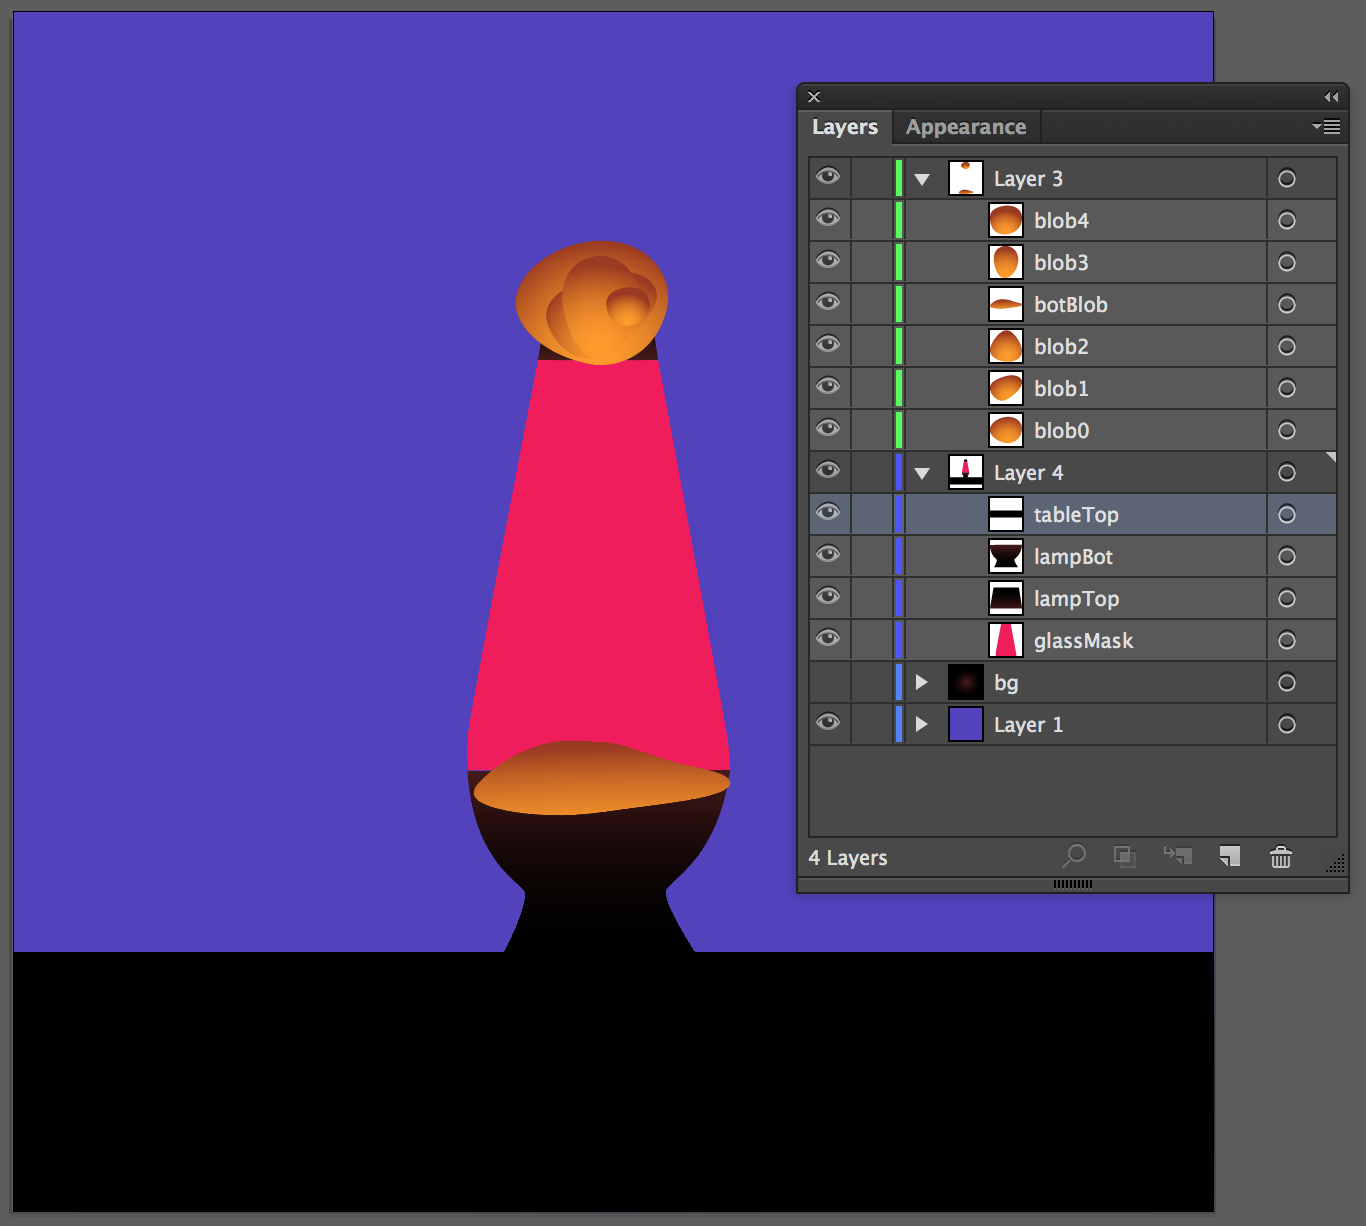 Lava lamp png - As I Mentioned Above Ai Insists On Adding Ids To Layers It Would Be More Useful If It Added Class Names That Way You Could Have Several Layers That